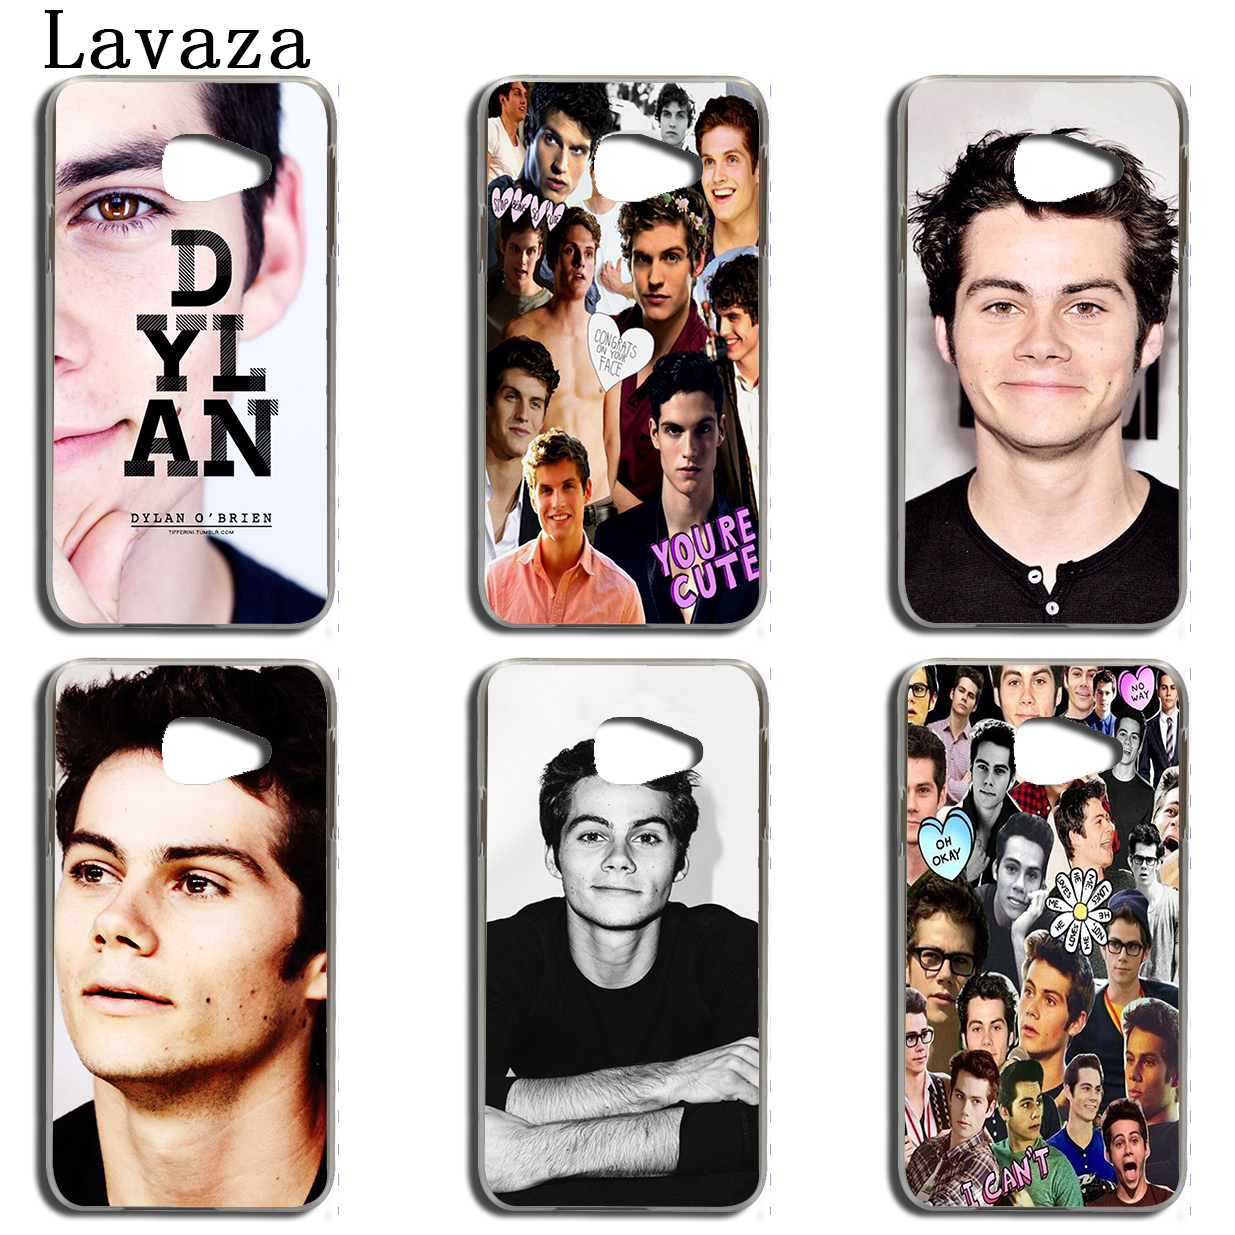 Lavaza Dylan OBrien Teen Wolf Phone Case for Samsung Galaxy A3 A7 A8 A5 2015 2016 2017 2018 Note 8 5 4 3 Grand Prime 2 Cover